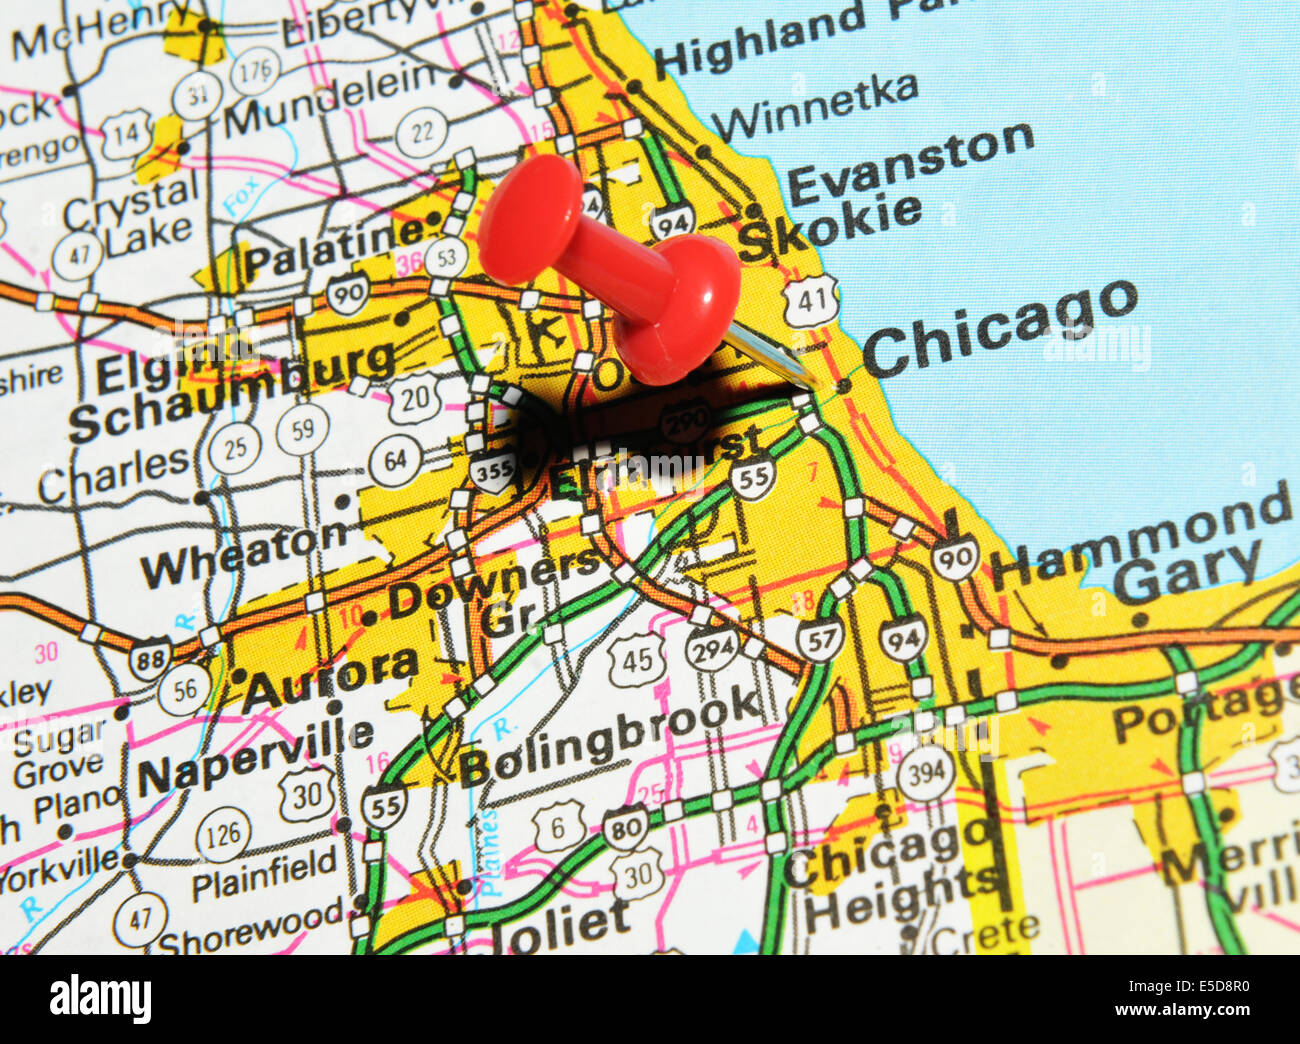 Chicago In The Us Map - Chicago on a us map